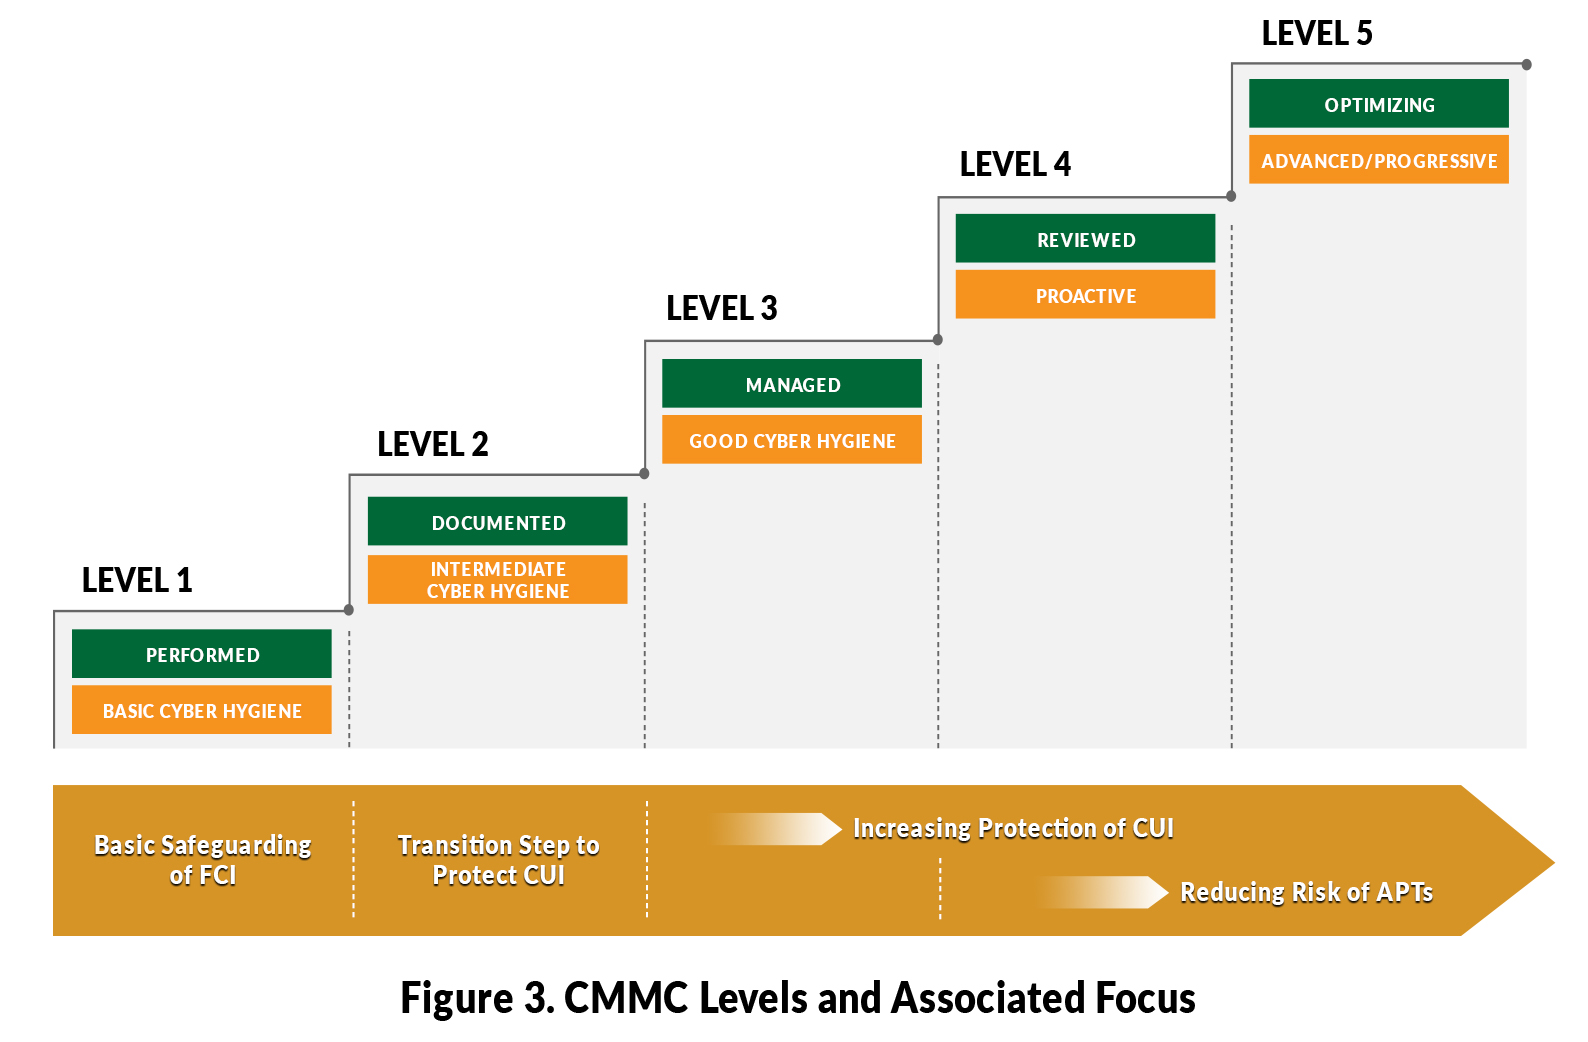 CMMC Levels and Associated Focus Chart